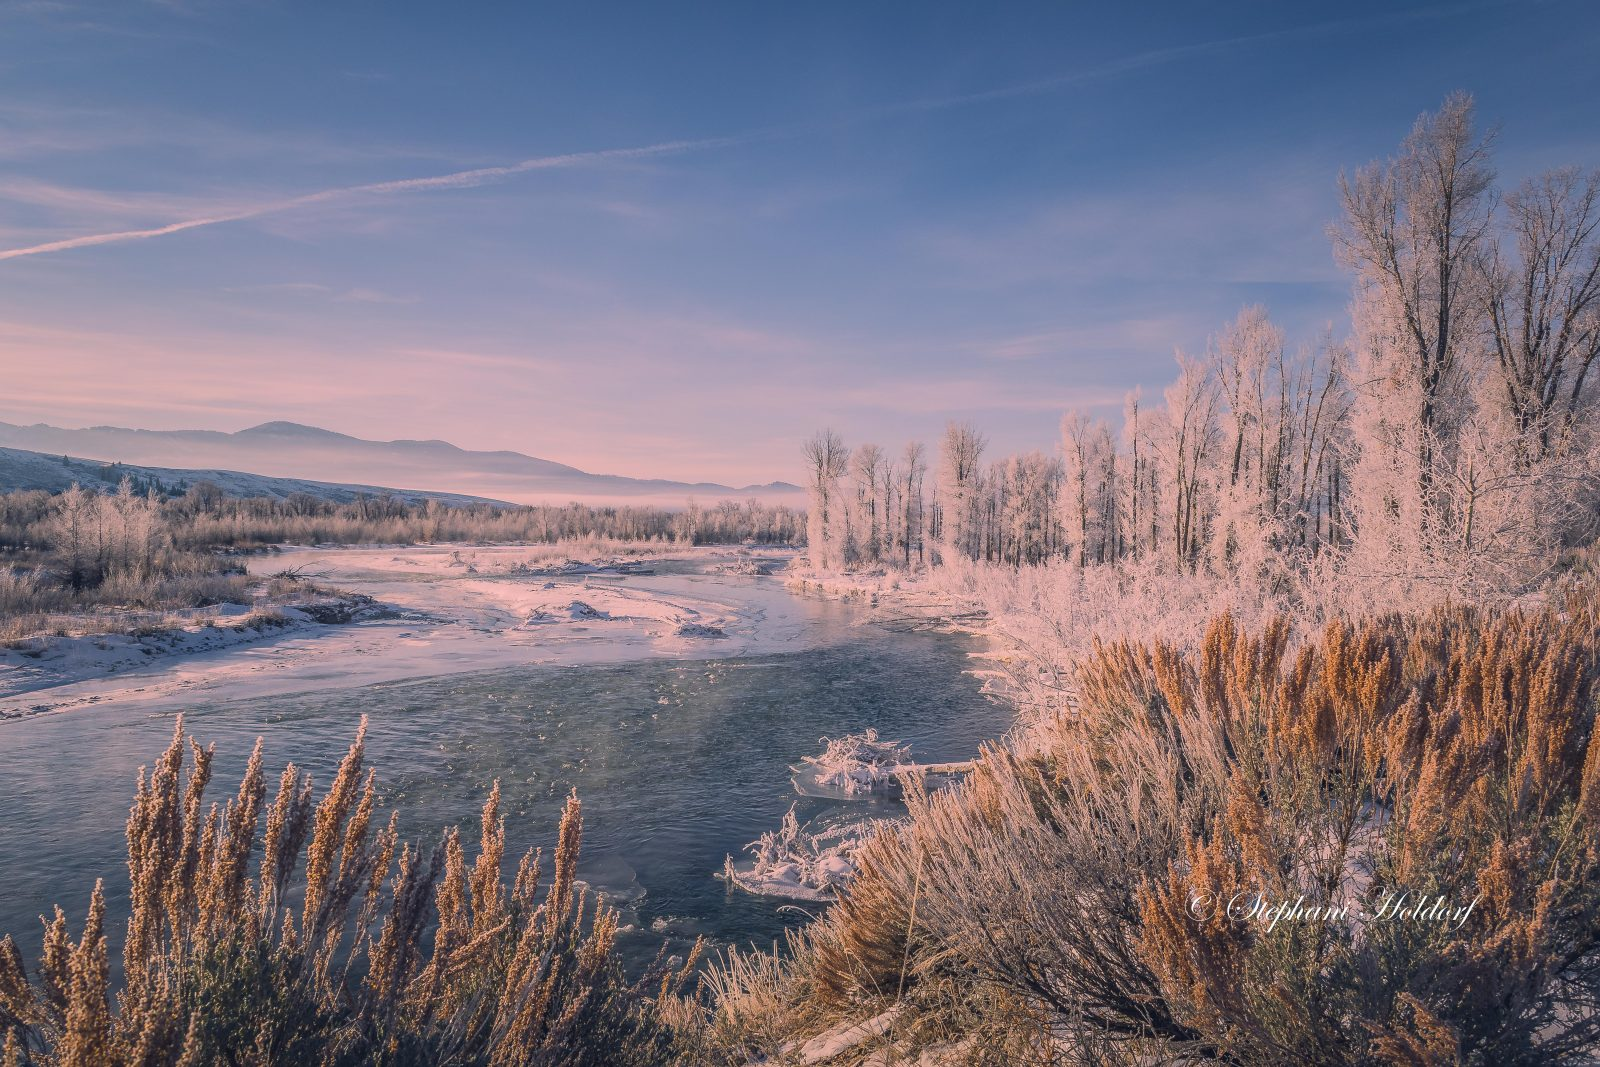 Frosty on the Gros Ventre